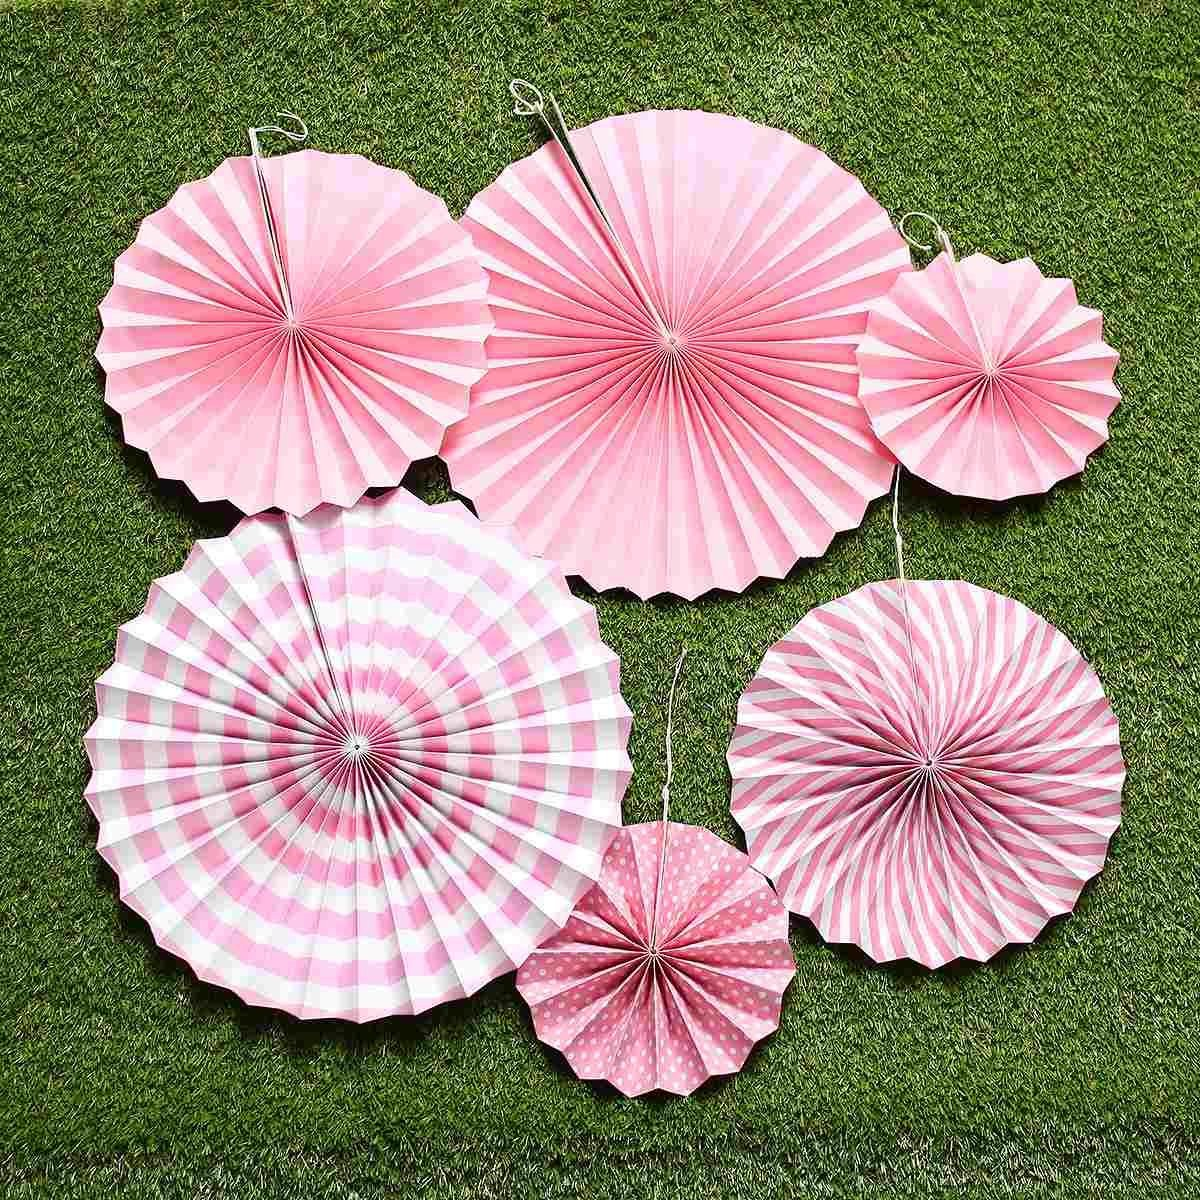 Cheap origami kids crafts find origami kids crafts deals on line at lavenz paper fan 6pcslot wedding decoration crafts flower origami home birthday party decorations kids mightylinksfo